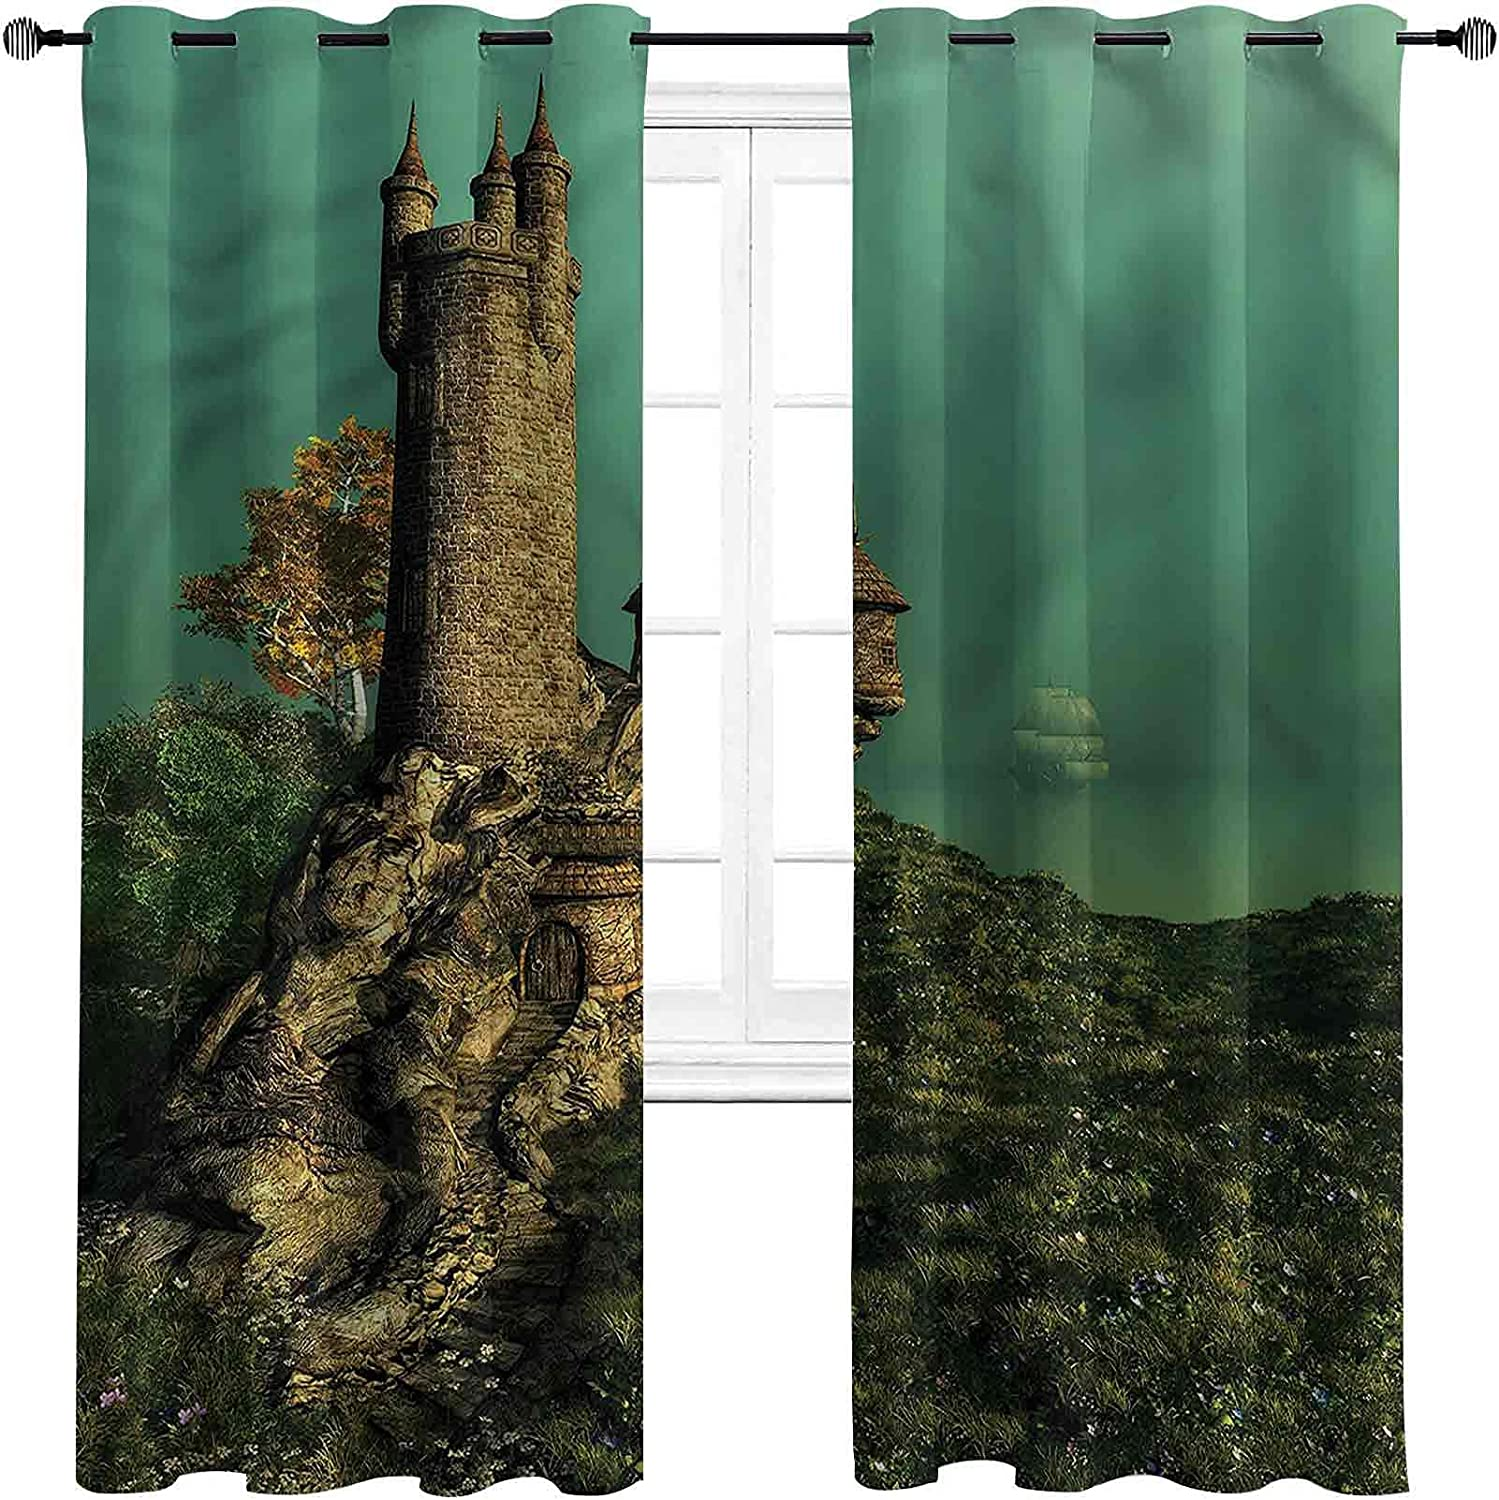 Medieval Bedroom Blackout Curtains Tower on of Magician Max 74% OFF Latest item Hill F